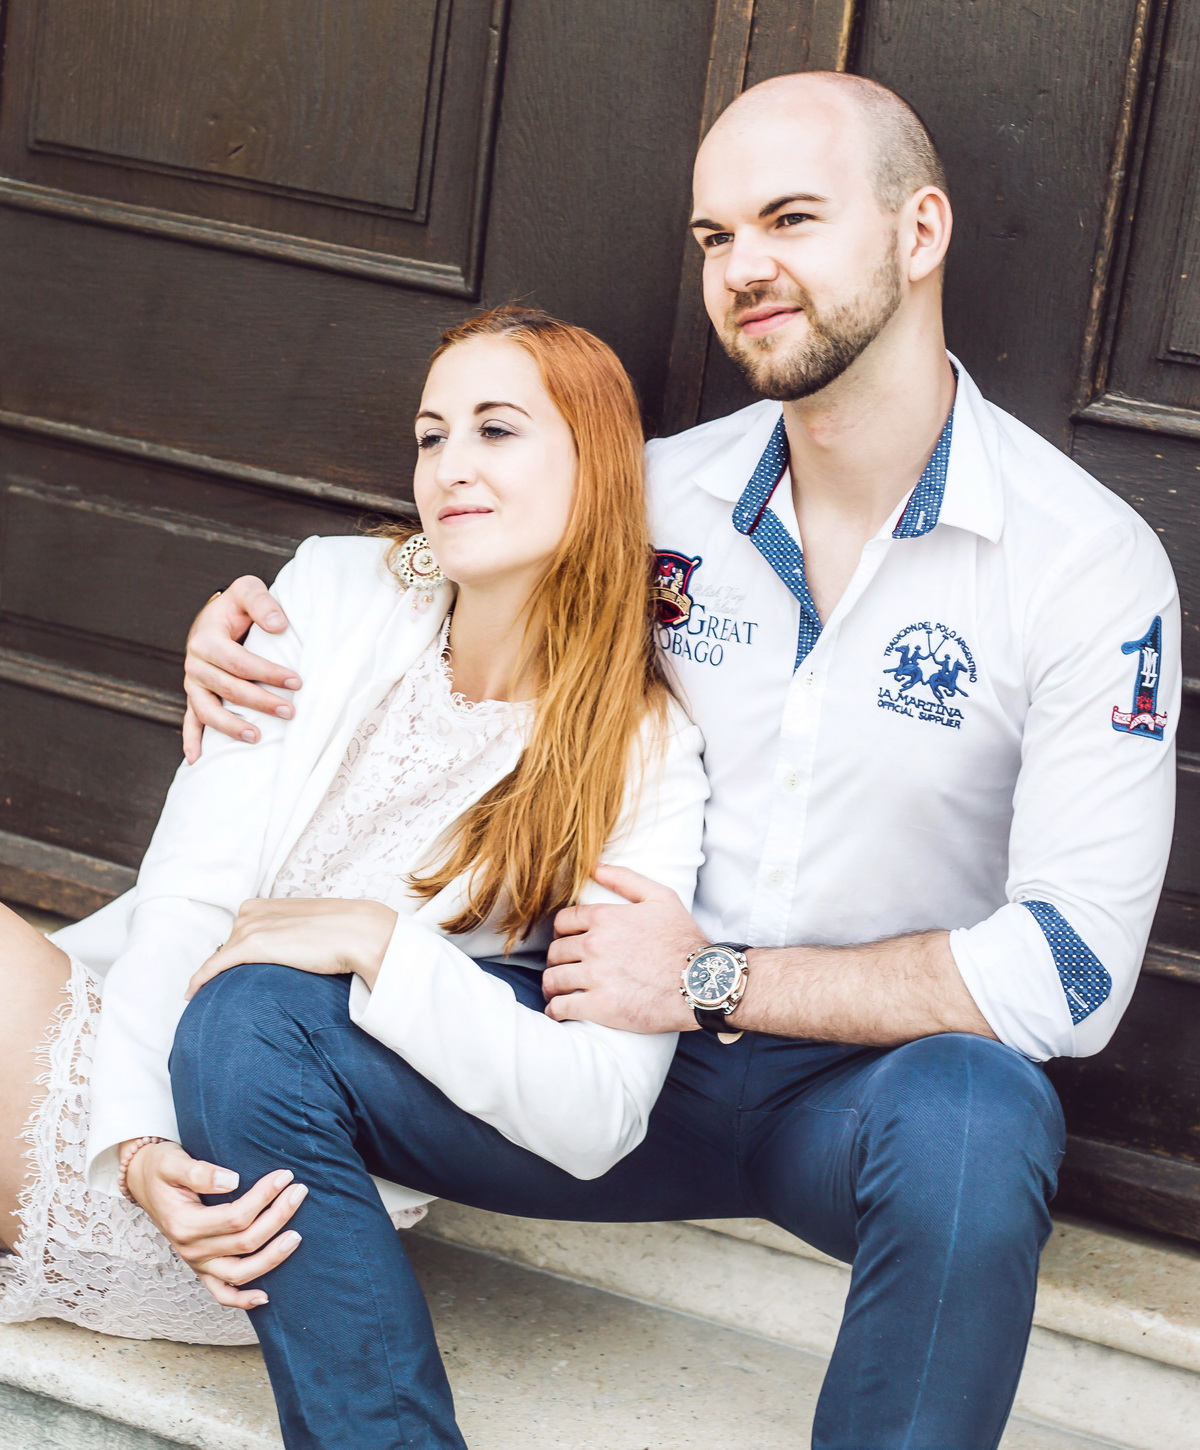 Claudia Sittig Photography - Couple - Love - Theresa and Thomas - 13